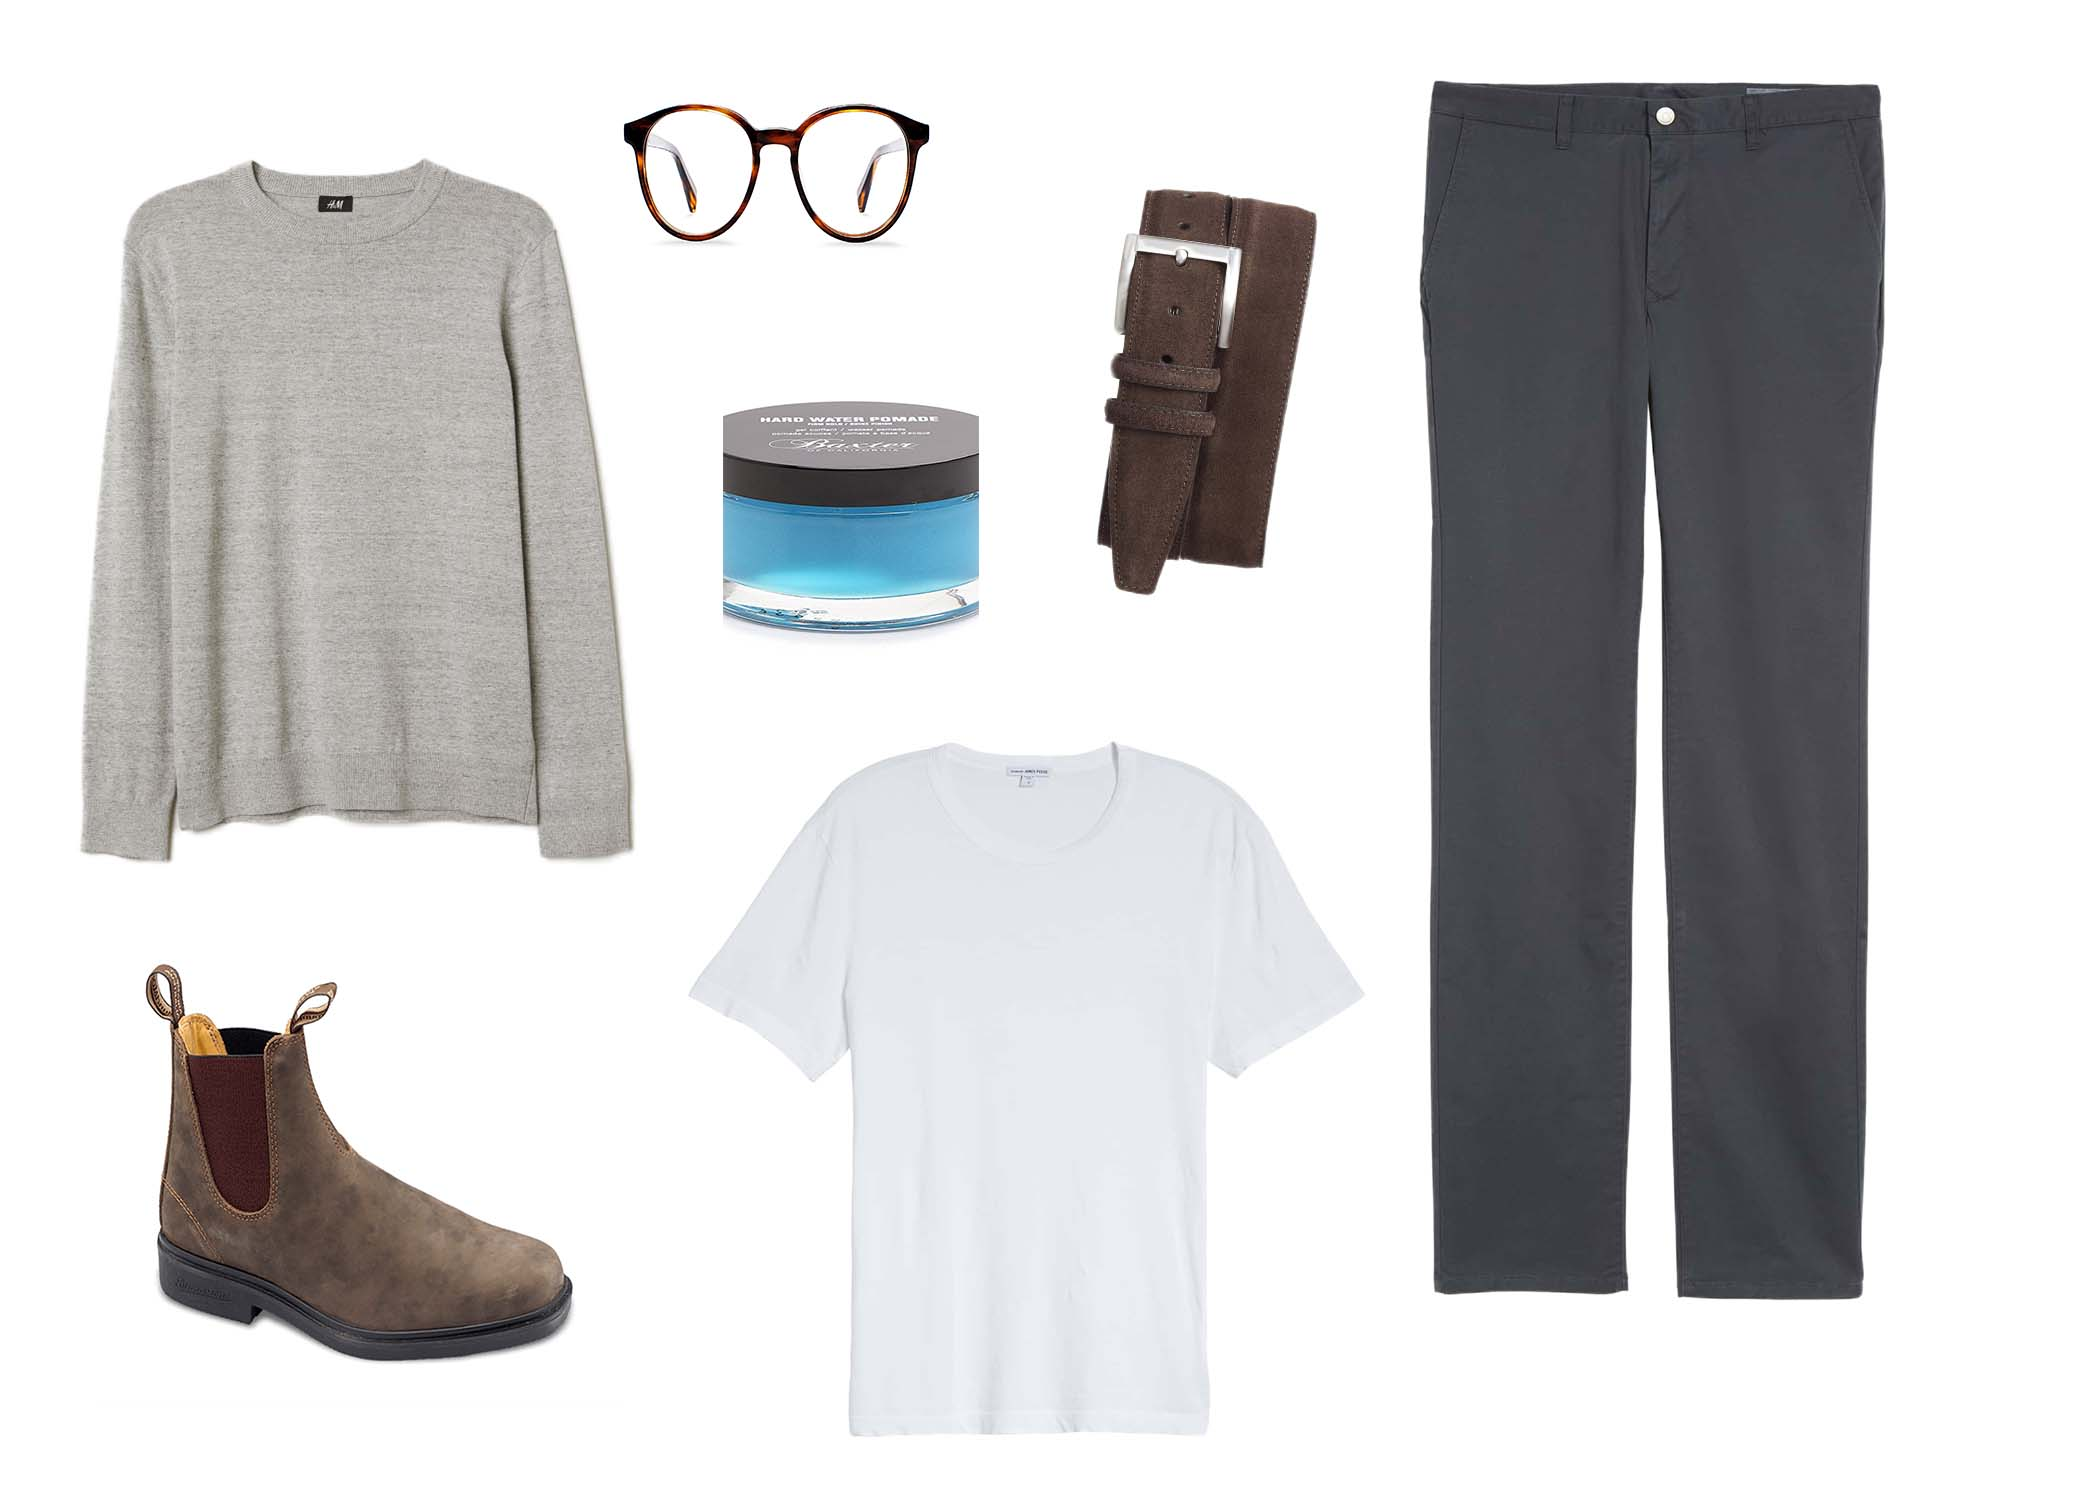 chelsea boots outfit for guys